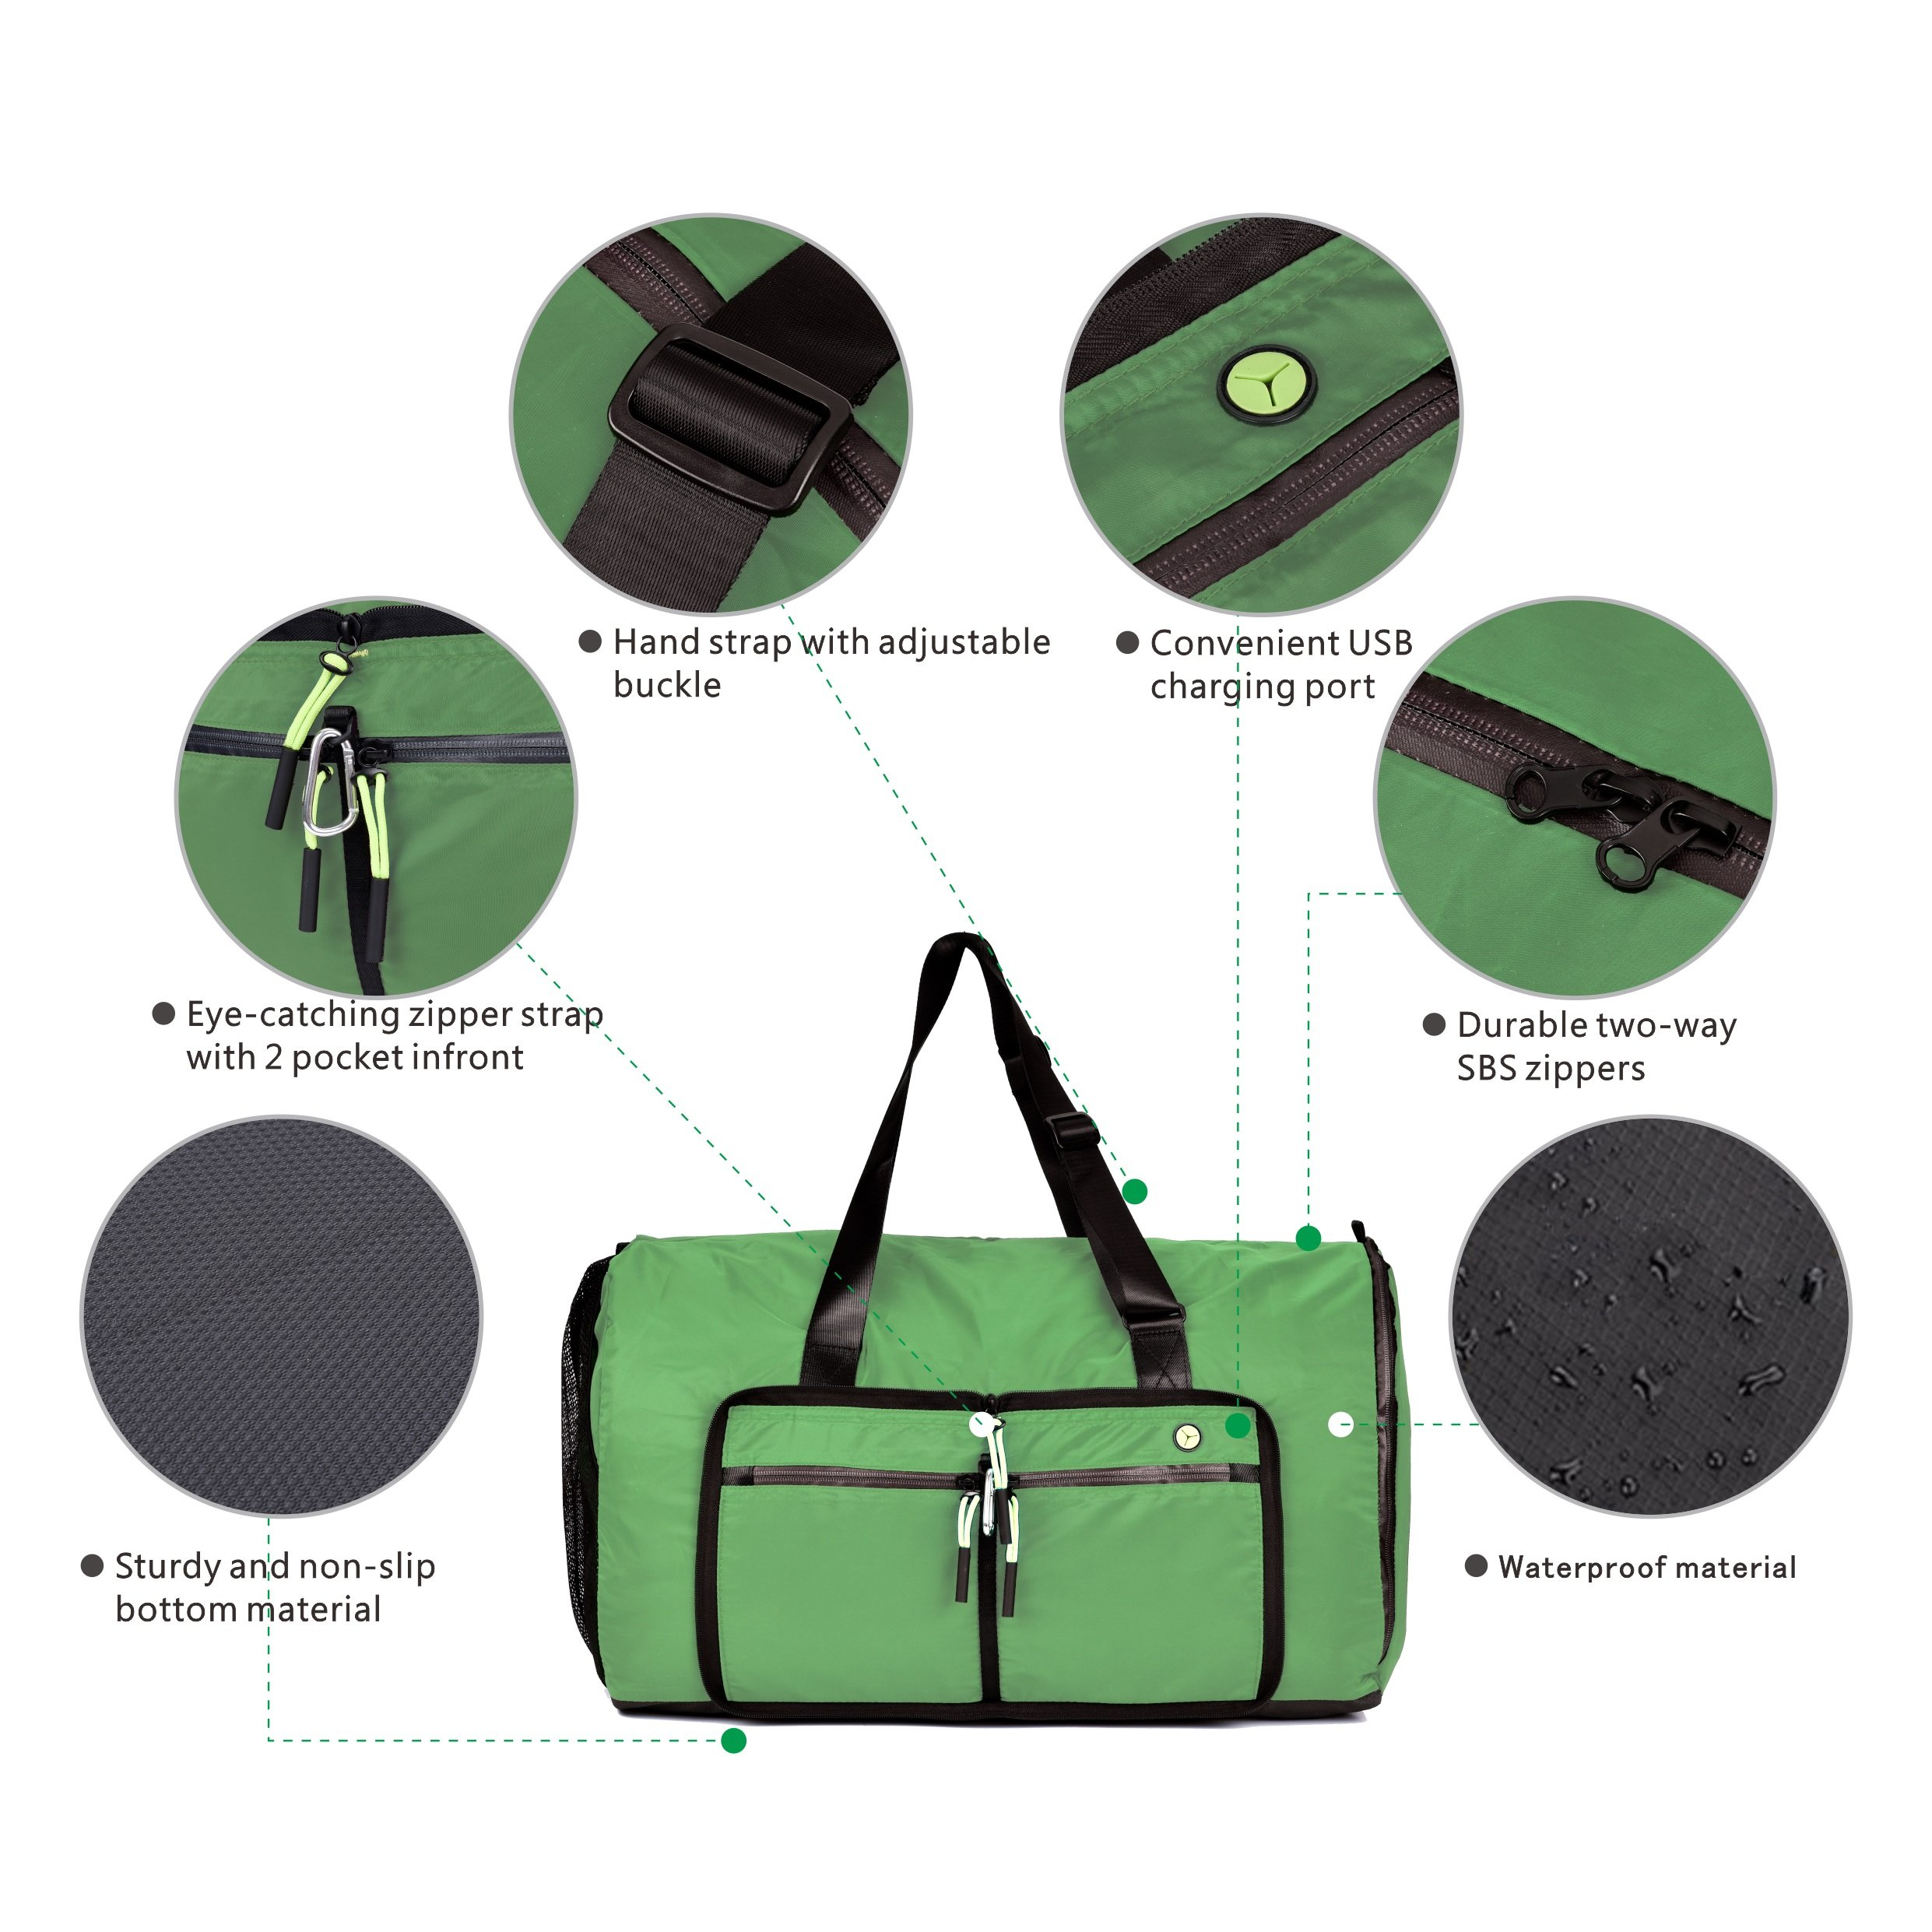 Msicyness Travel Duffel Bag 70L Overnight Bag Large Sports Duffle Gym Tote for Men and Women Waterproof Carry on Weekender Bags with Shoe Compartment-Green